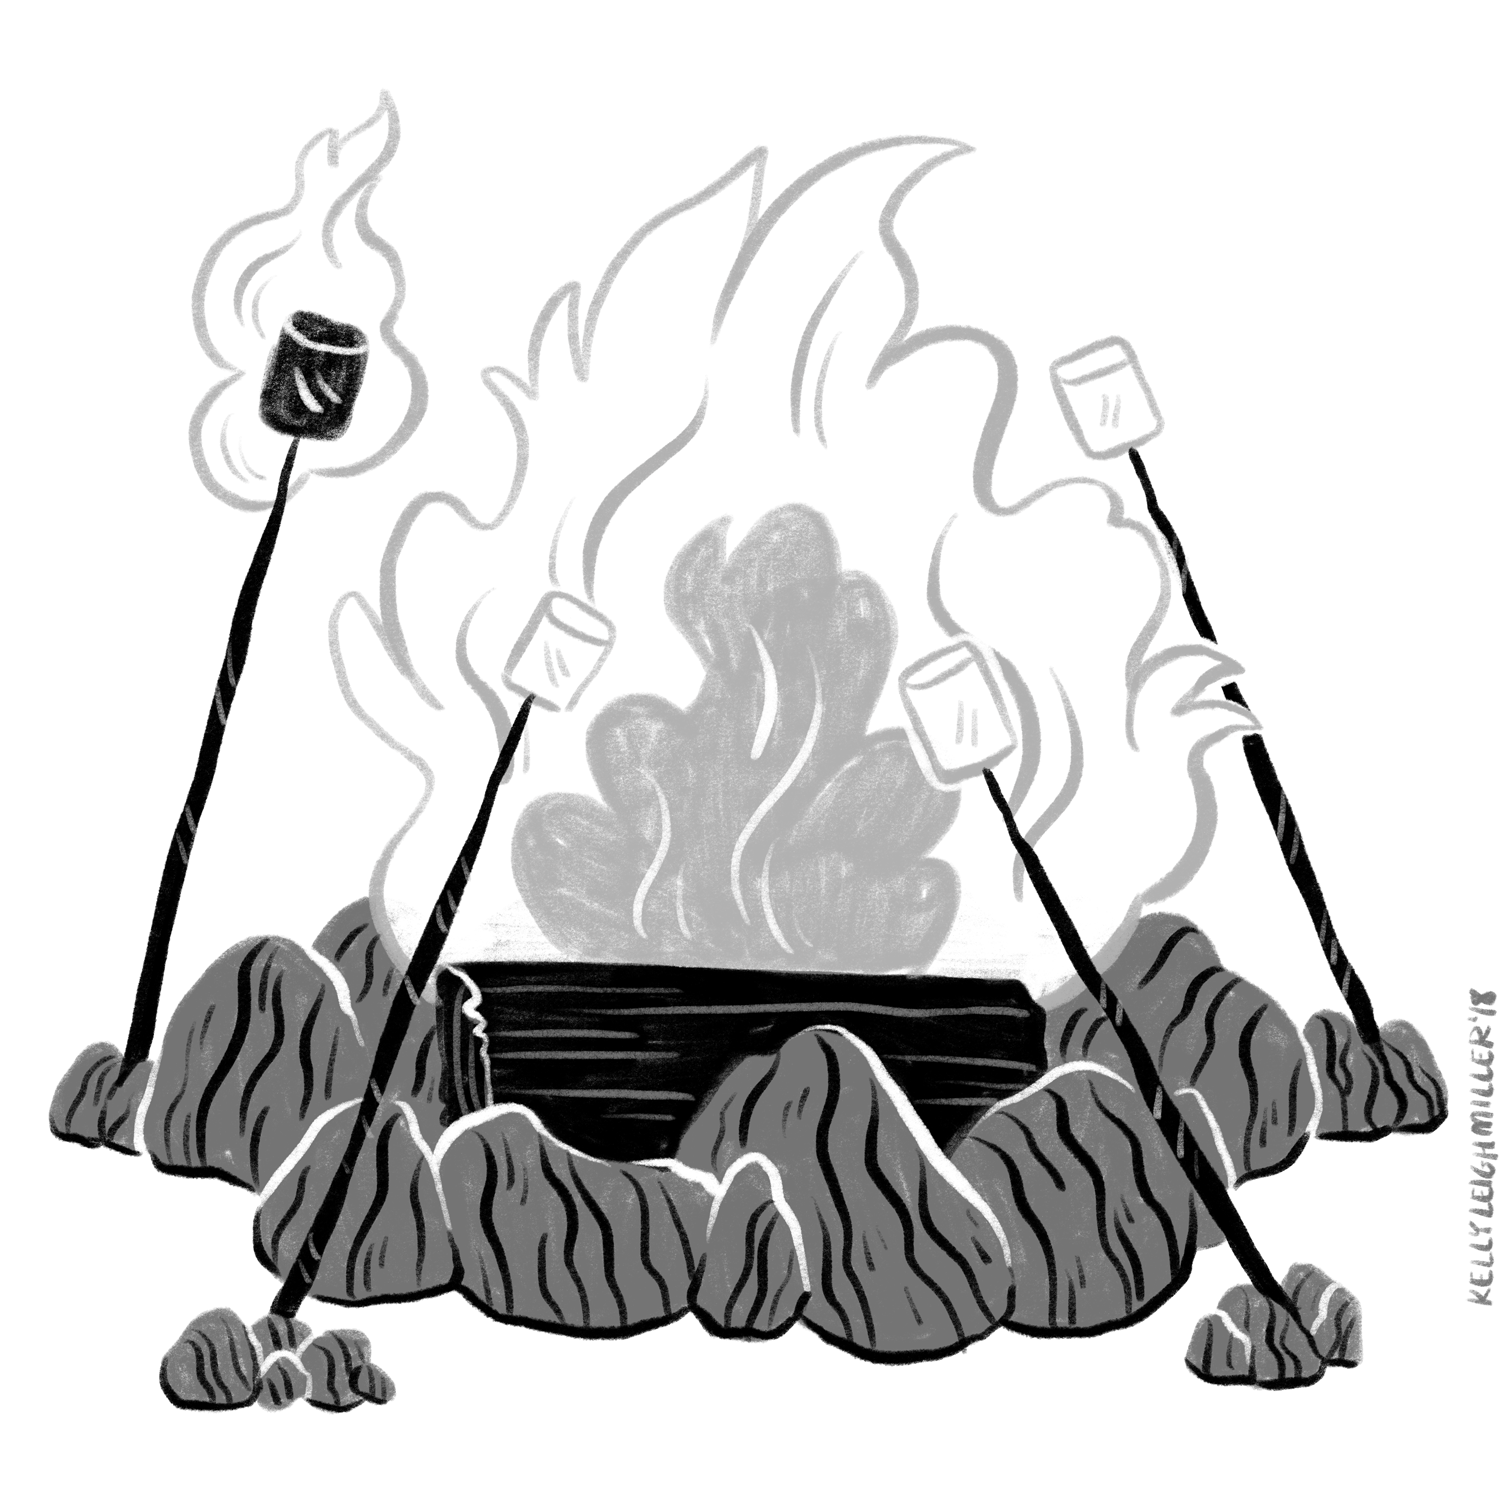 Campfire_Marshmallows.png